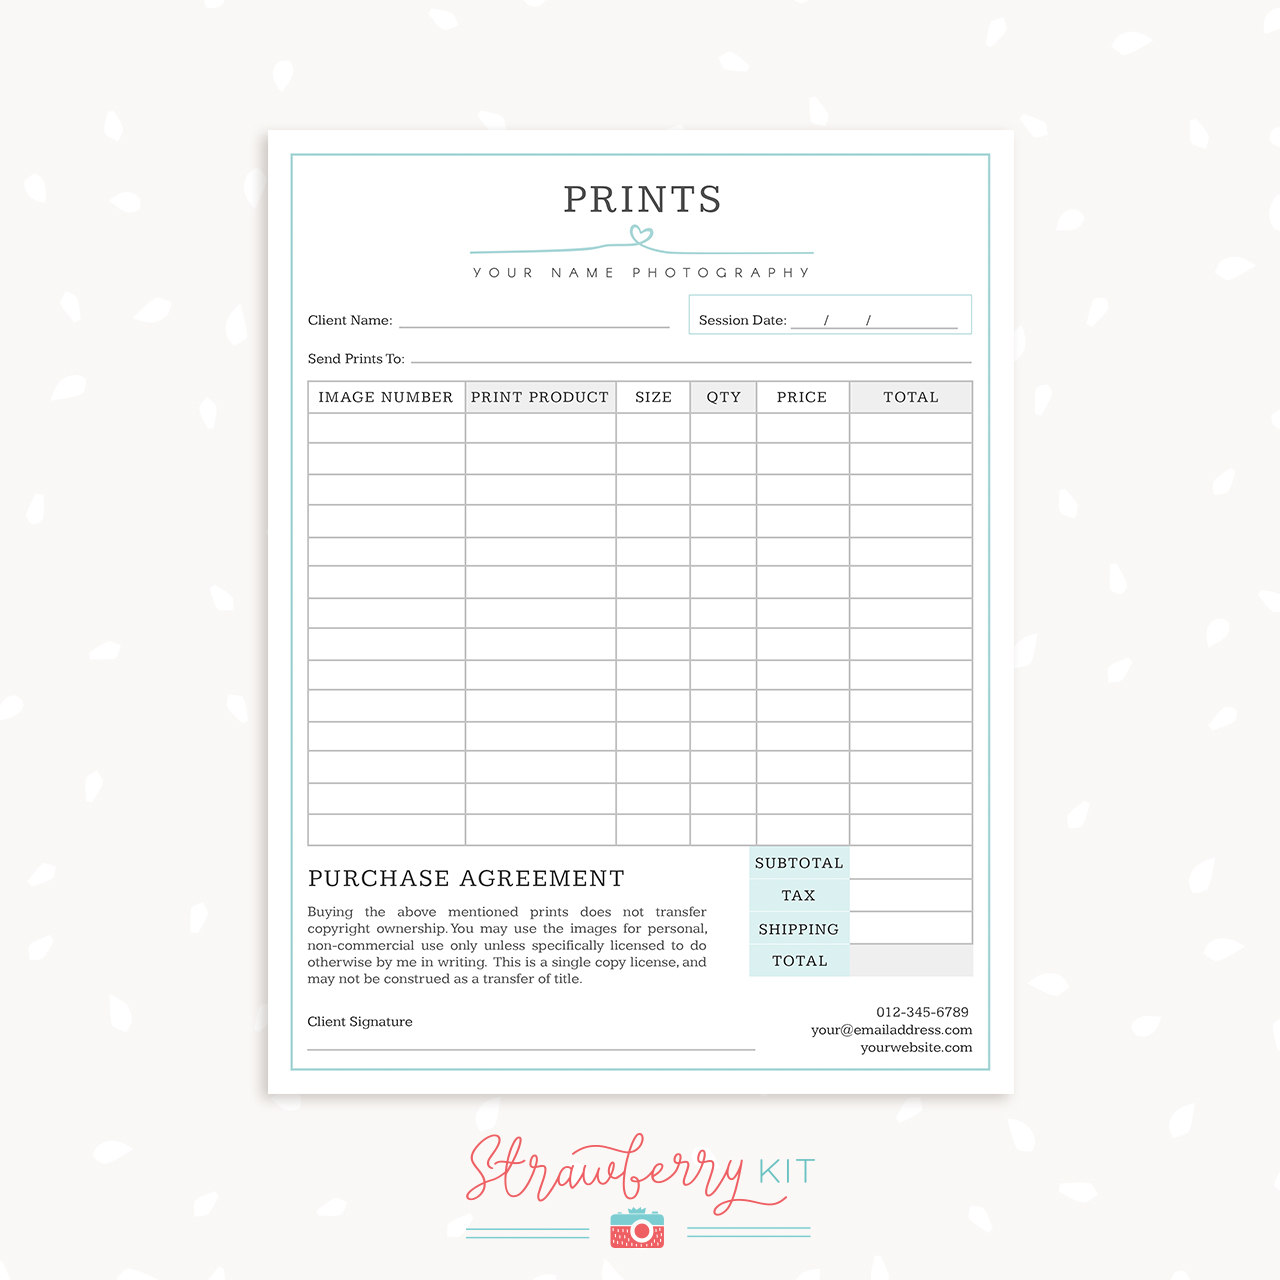 Product Order Form Template Word. Photography Form Templates Bundle Simply  Chic Strawberry Kit . Product Order Form Template Word  Product Order Form Template